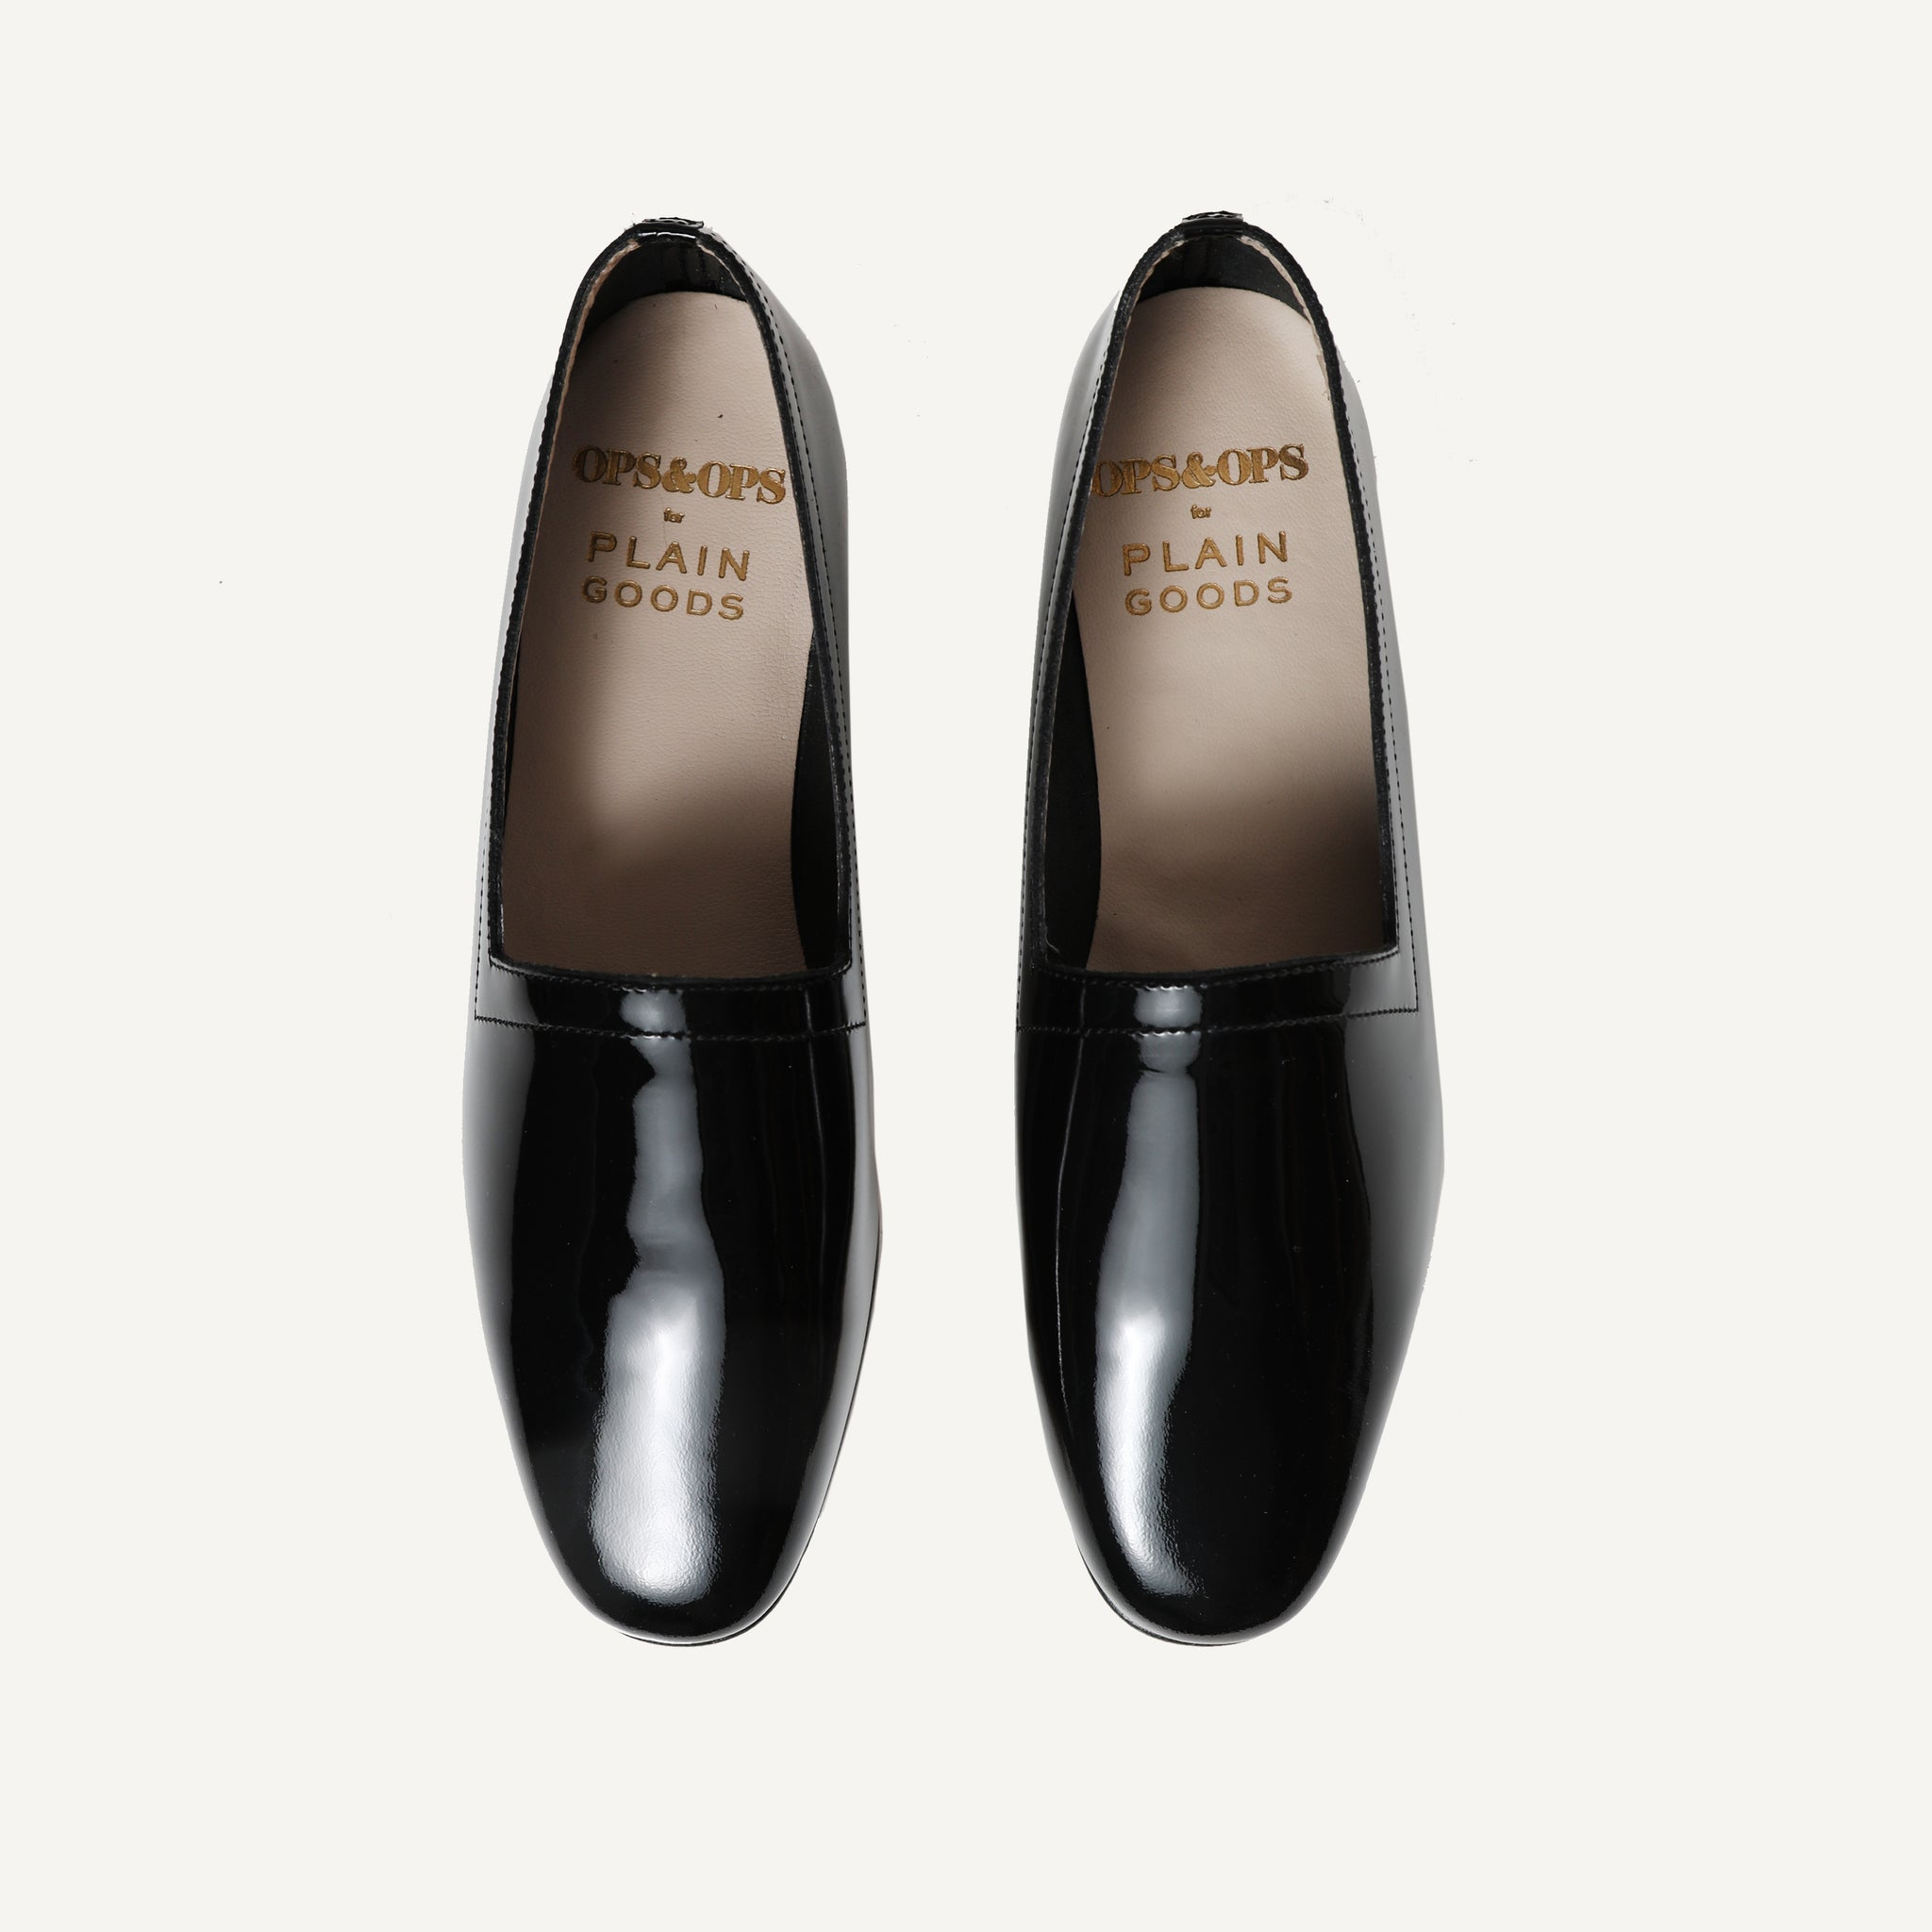 PLAIN GOODS + OPS & OPS LEATHER LOAFER